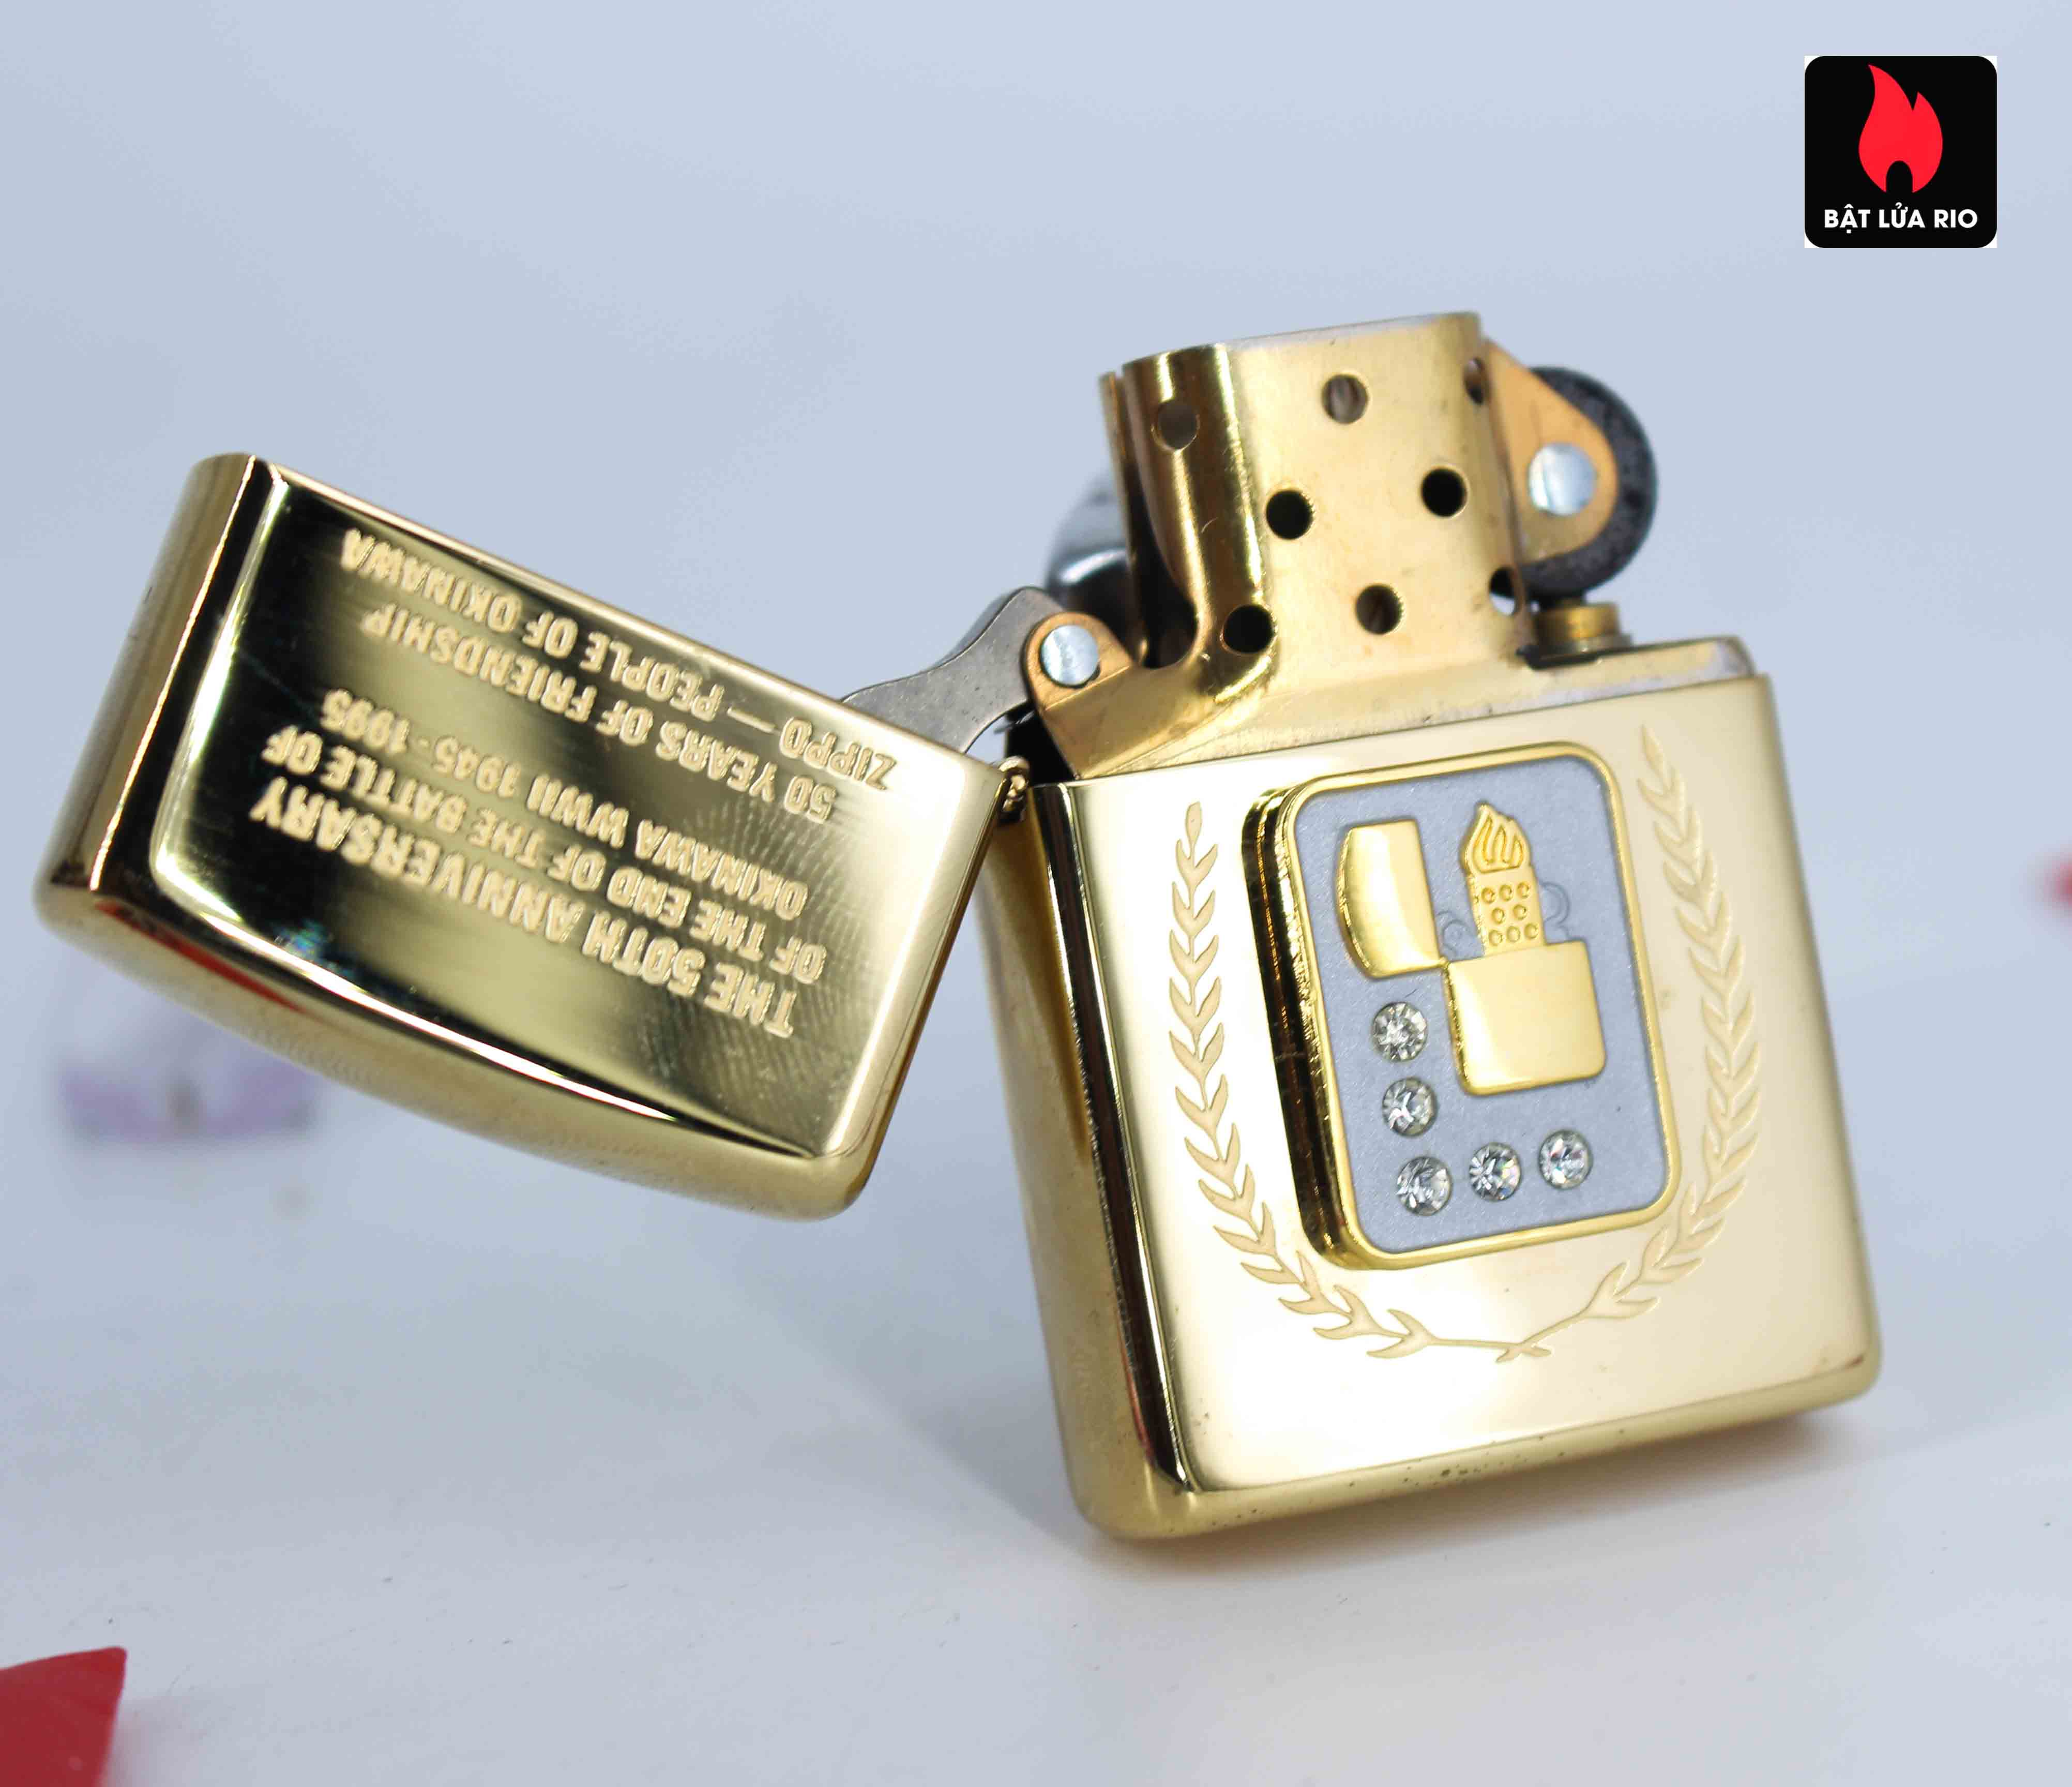 Zippo La Mã 1995 - 50th Anniversary Of The And Of The Battle Of Okinawa WWII 1945-1995 1